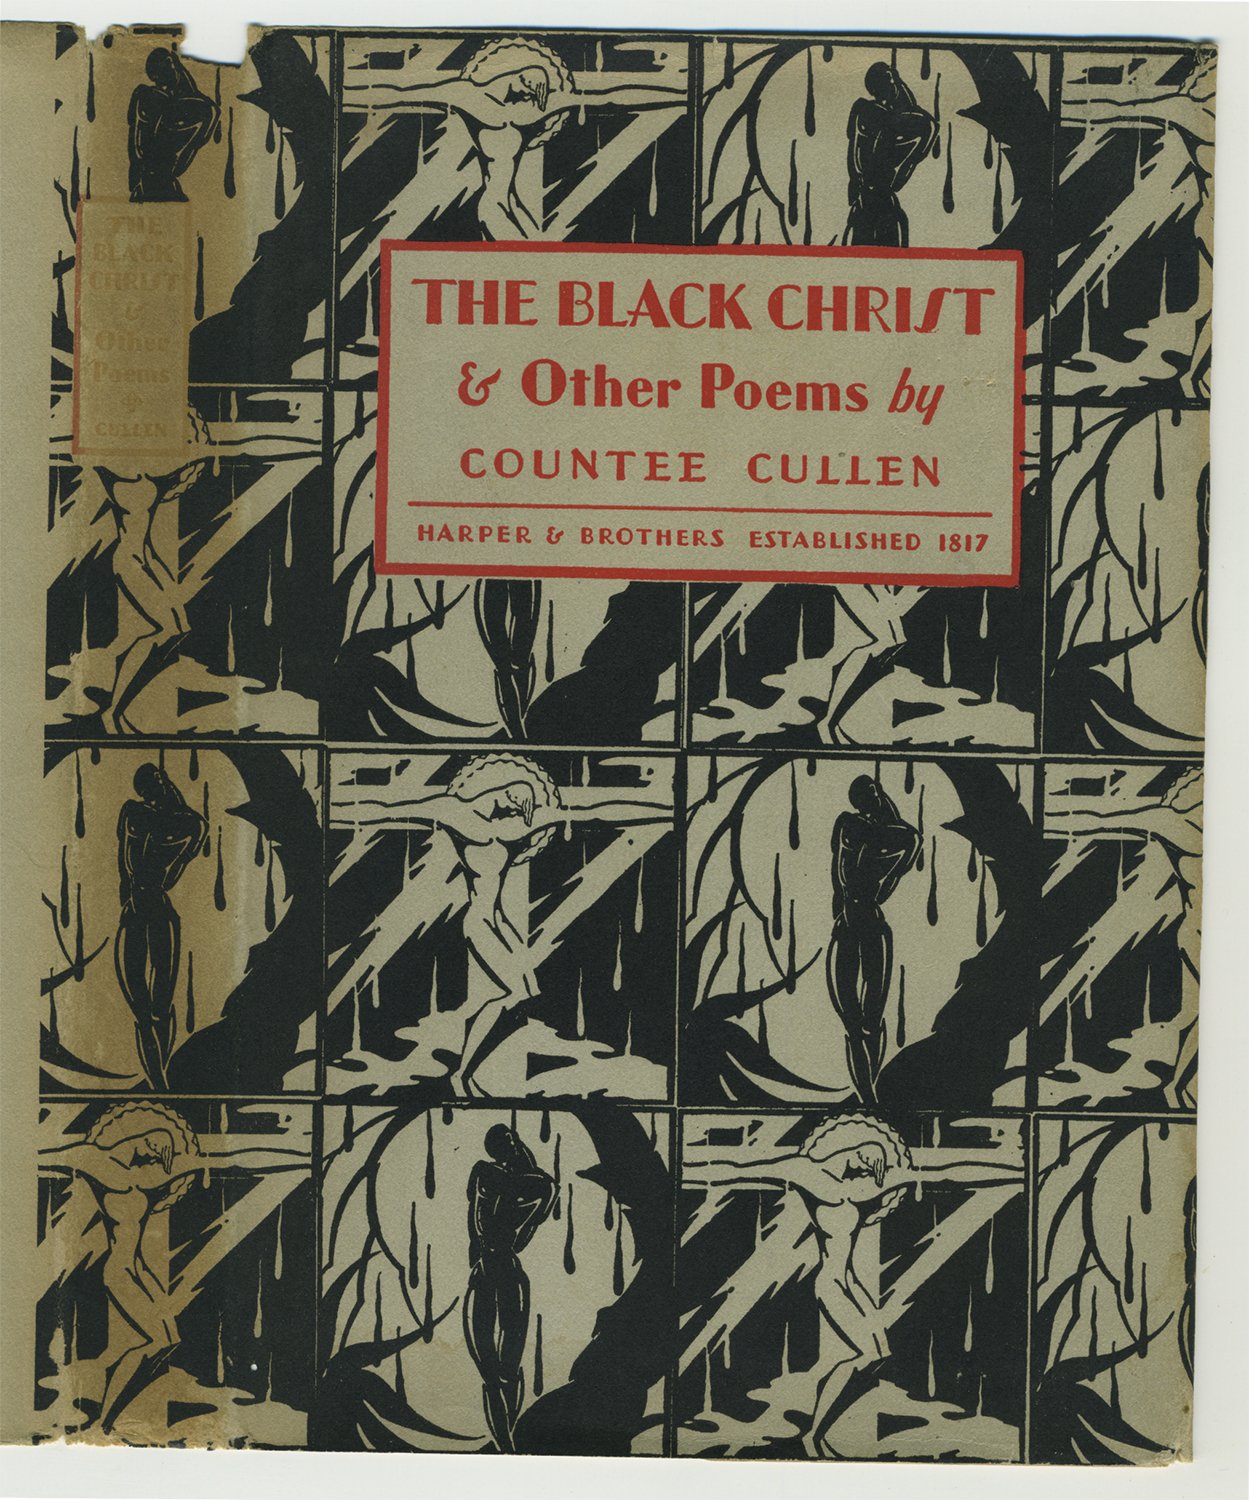 The Black Christ & Other Poems, 1929, Published by Harper & Brothers. Countee Cullen (American, b. 1903 - 1946). Illustrations: Charles Cullen (American, b. unknown).